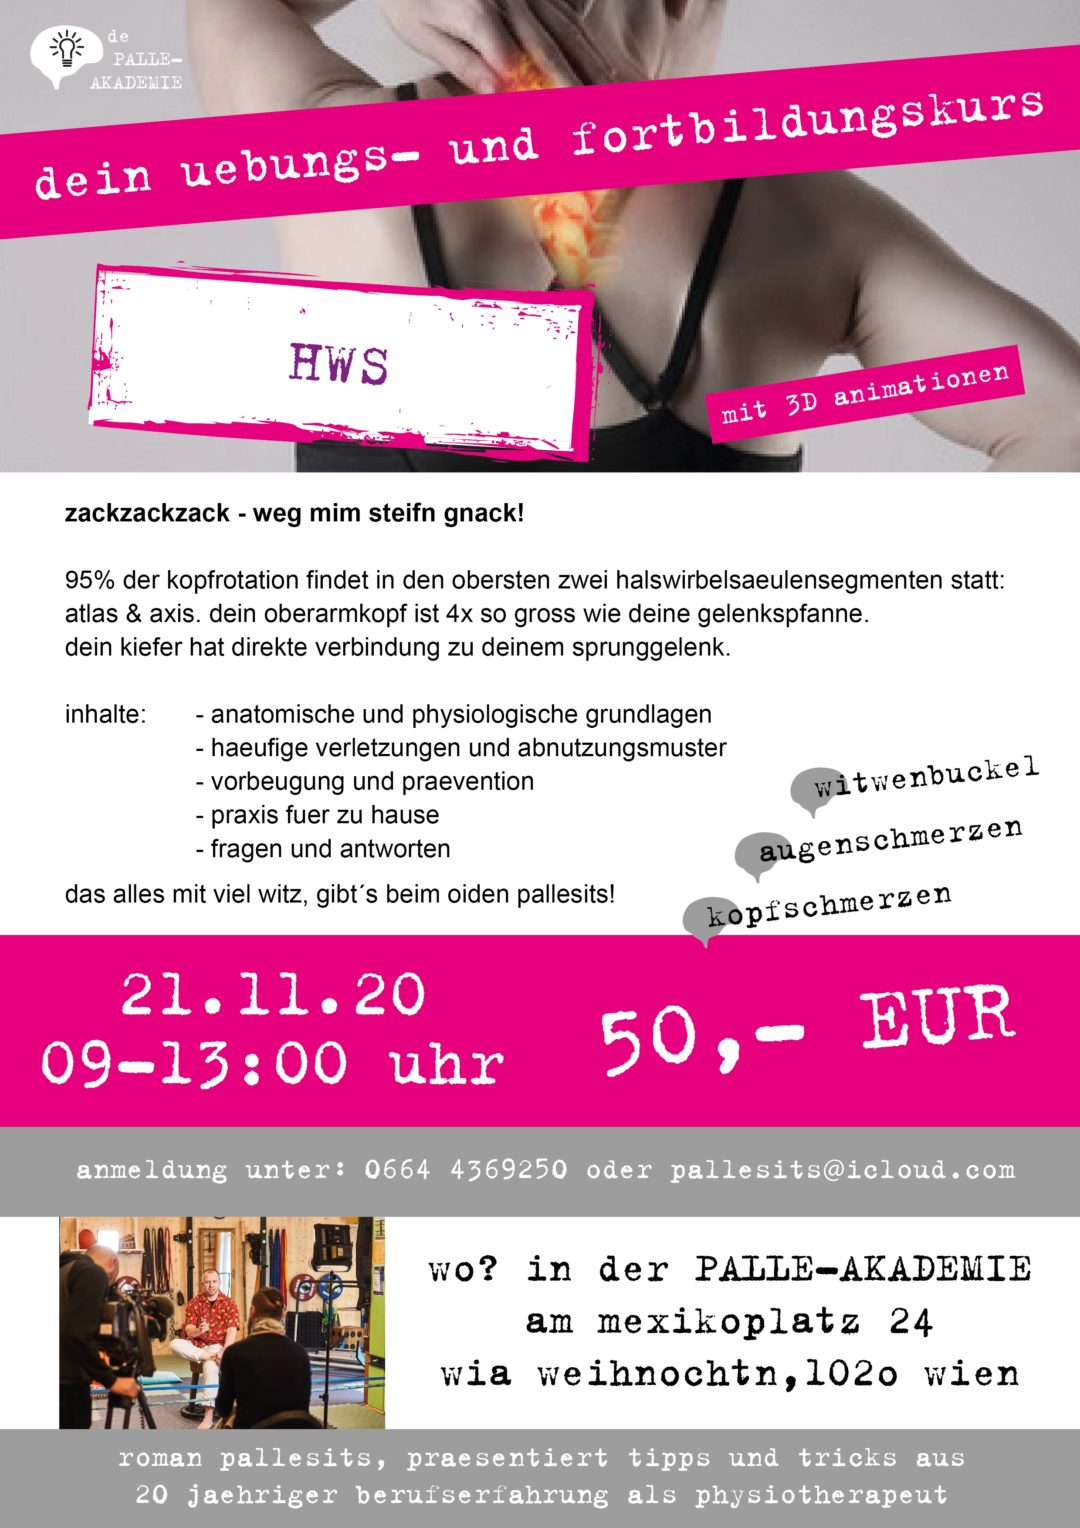 halswirbelsaeule-workshop-physiotherapie-wien-romanpallesits-palle-akademie